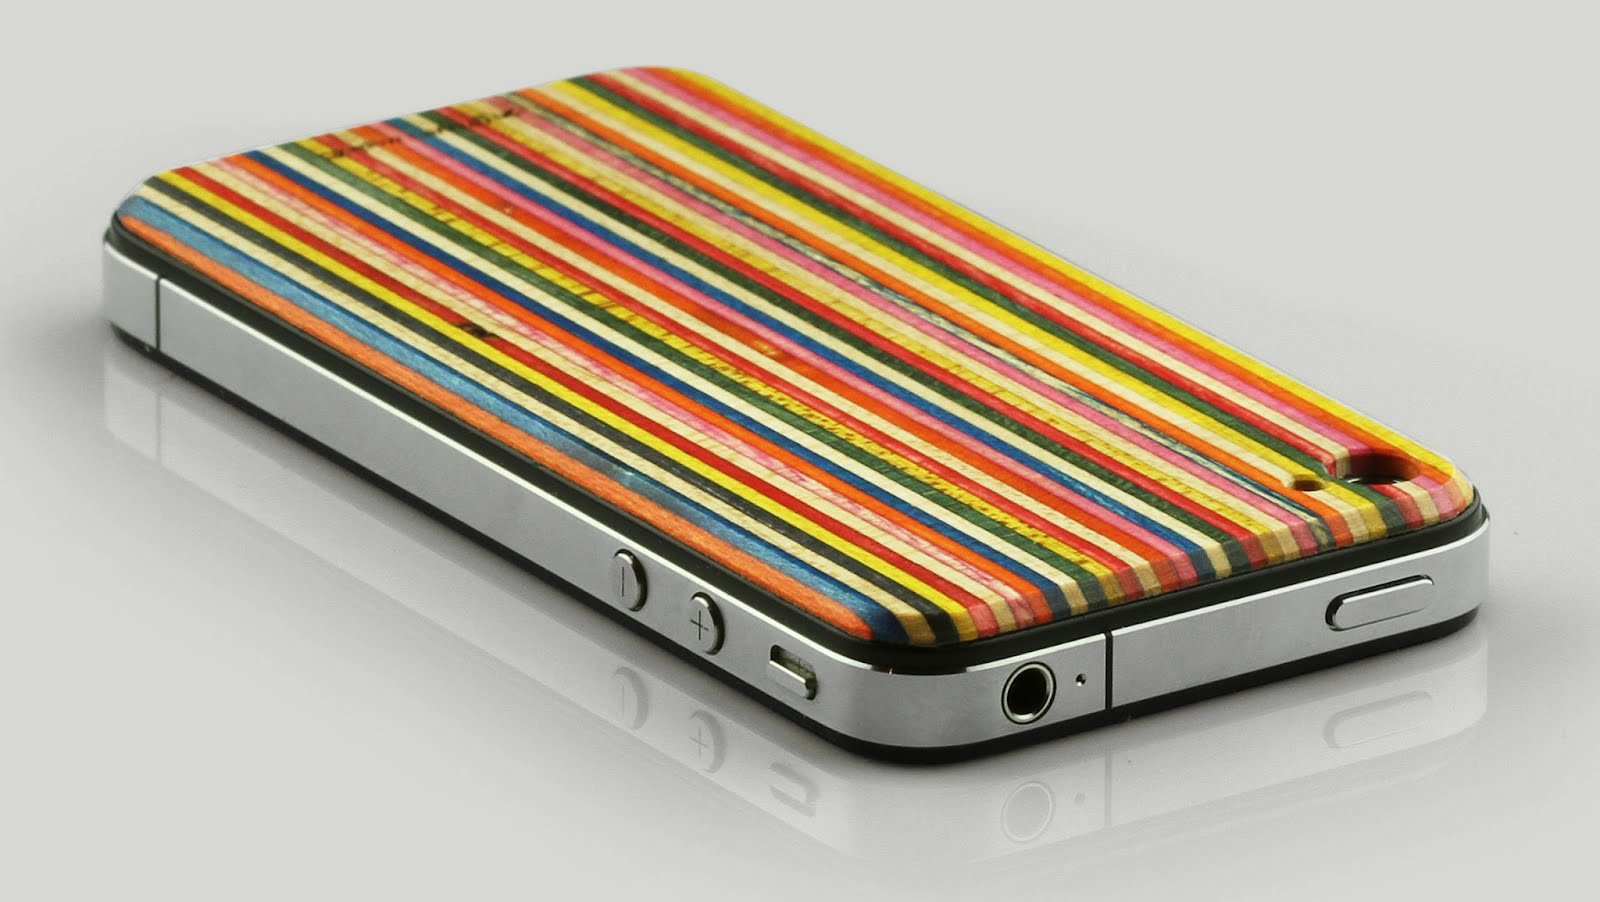 SkateBack iPhone Cases By Maple XO and Grove Are Crafted From Recycled  Skateboards | Inhabitat - Green Design, Innovation, Architecture, Green  Building